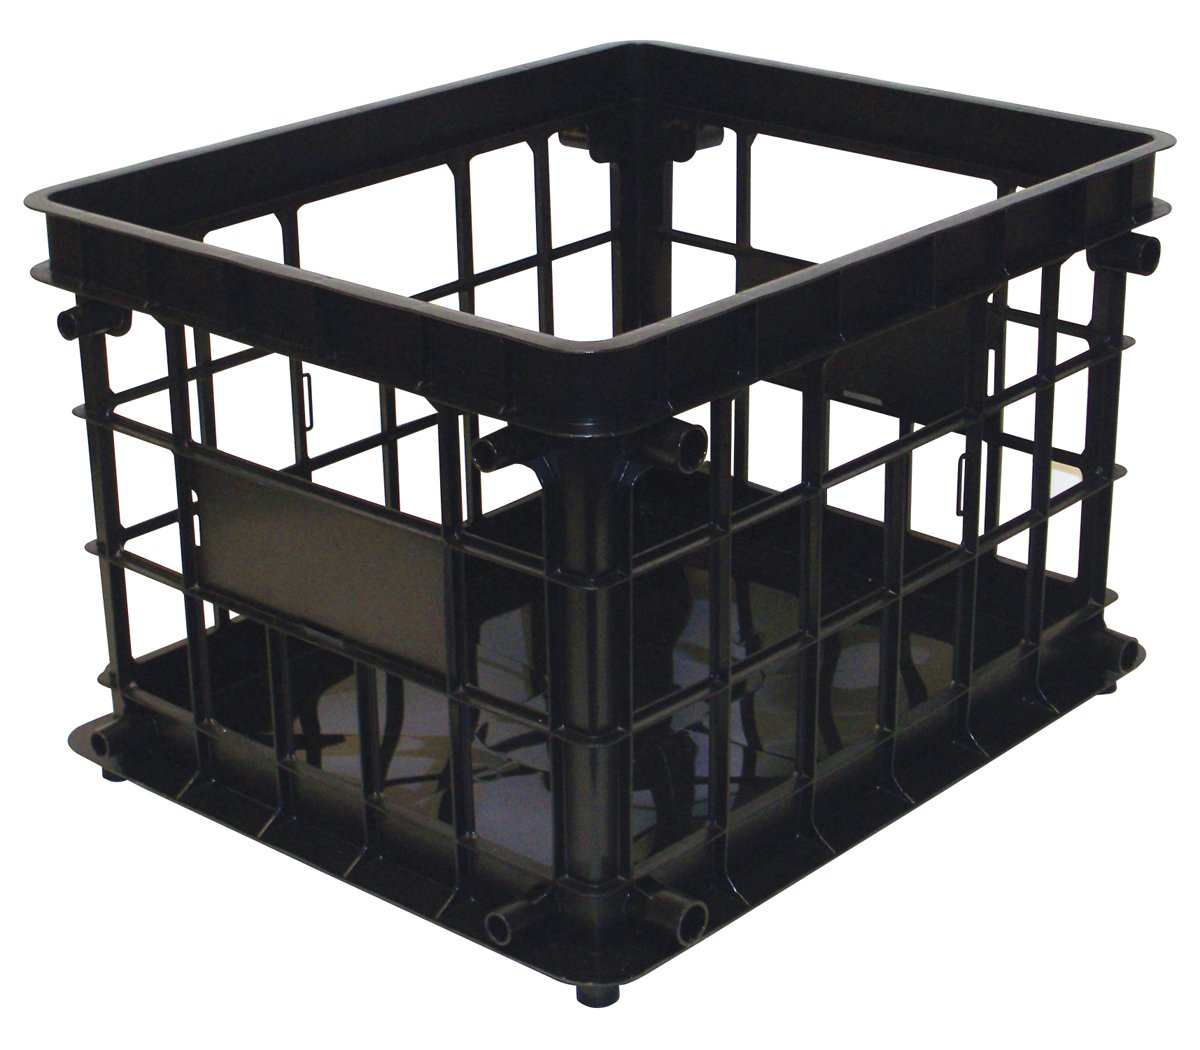 United Solutions Organize Your Home CR0093 Black Plastic Inter-Locking Modular Crate -Plastic Modular Crate in Black Snaps Together for Space Saving Storage/Organization in Home, Office or Dorm Room by United Solutions